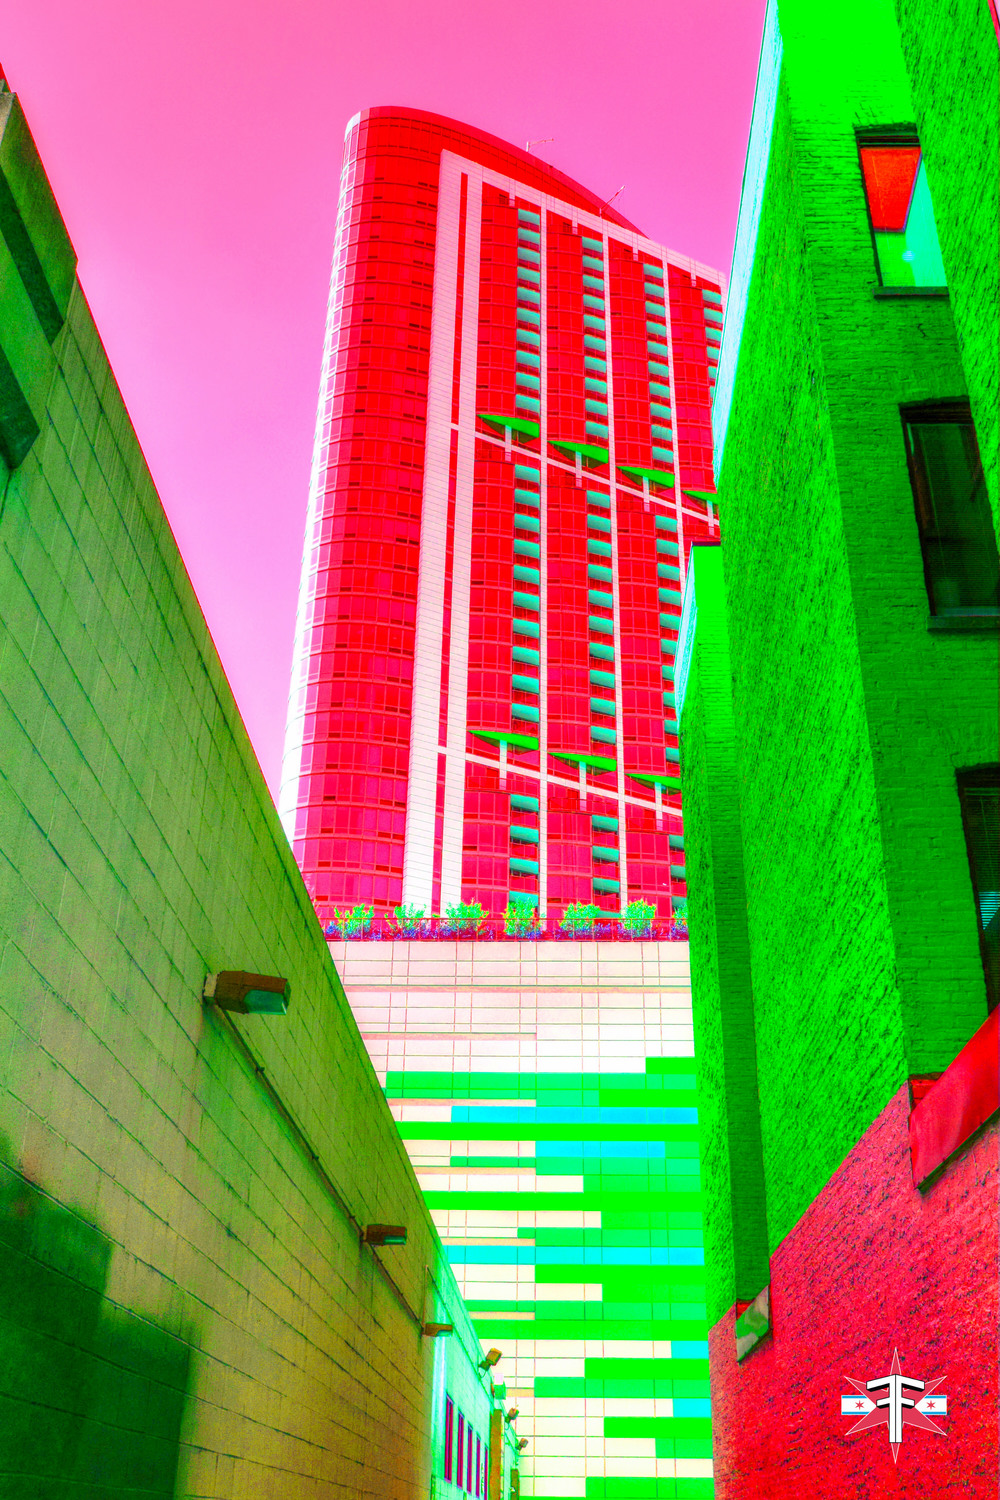 chicago art abstract eric formato photography color travel cityscape architecture saturated citycapes bright vibrant artistic-60-2.jpg